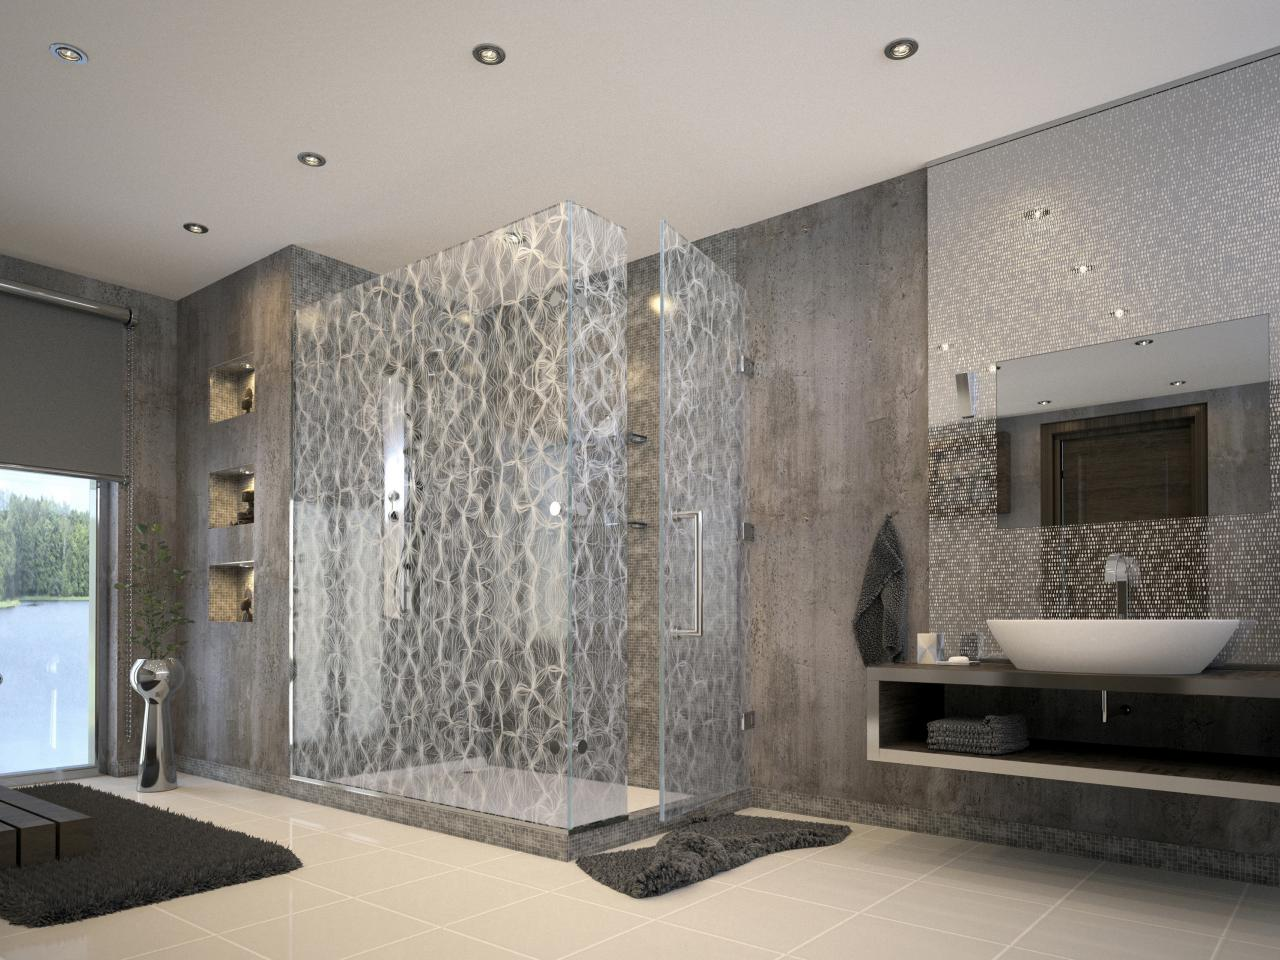 Original_Jackie-Dishner-Luxury-Showers-Robert-A-M-Stern-Contemporary-Tile-Silver-Shower_4x3.jpg.rend.hgtvcom.1280.960